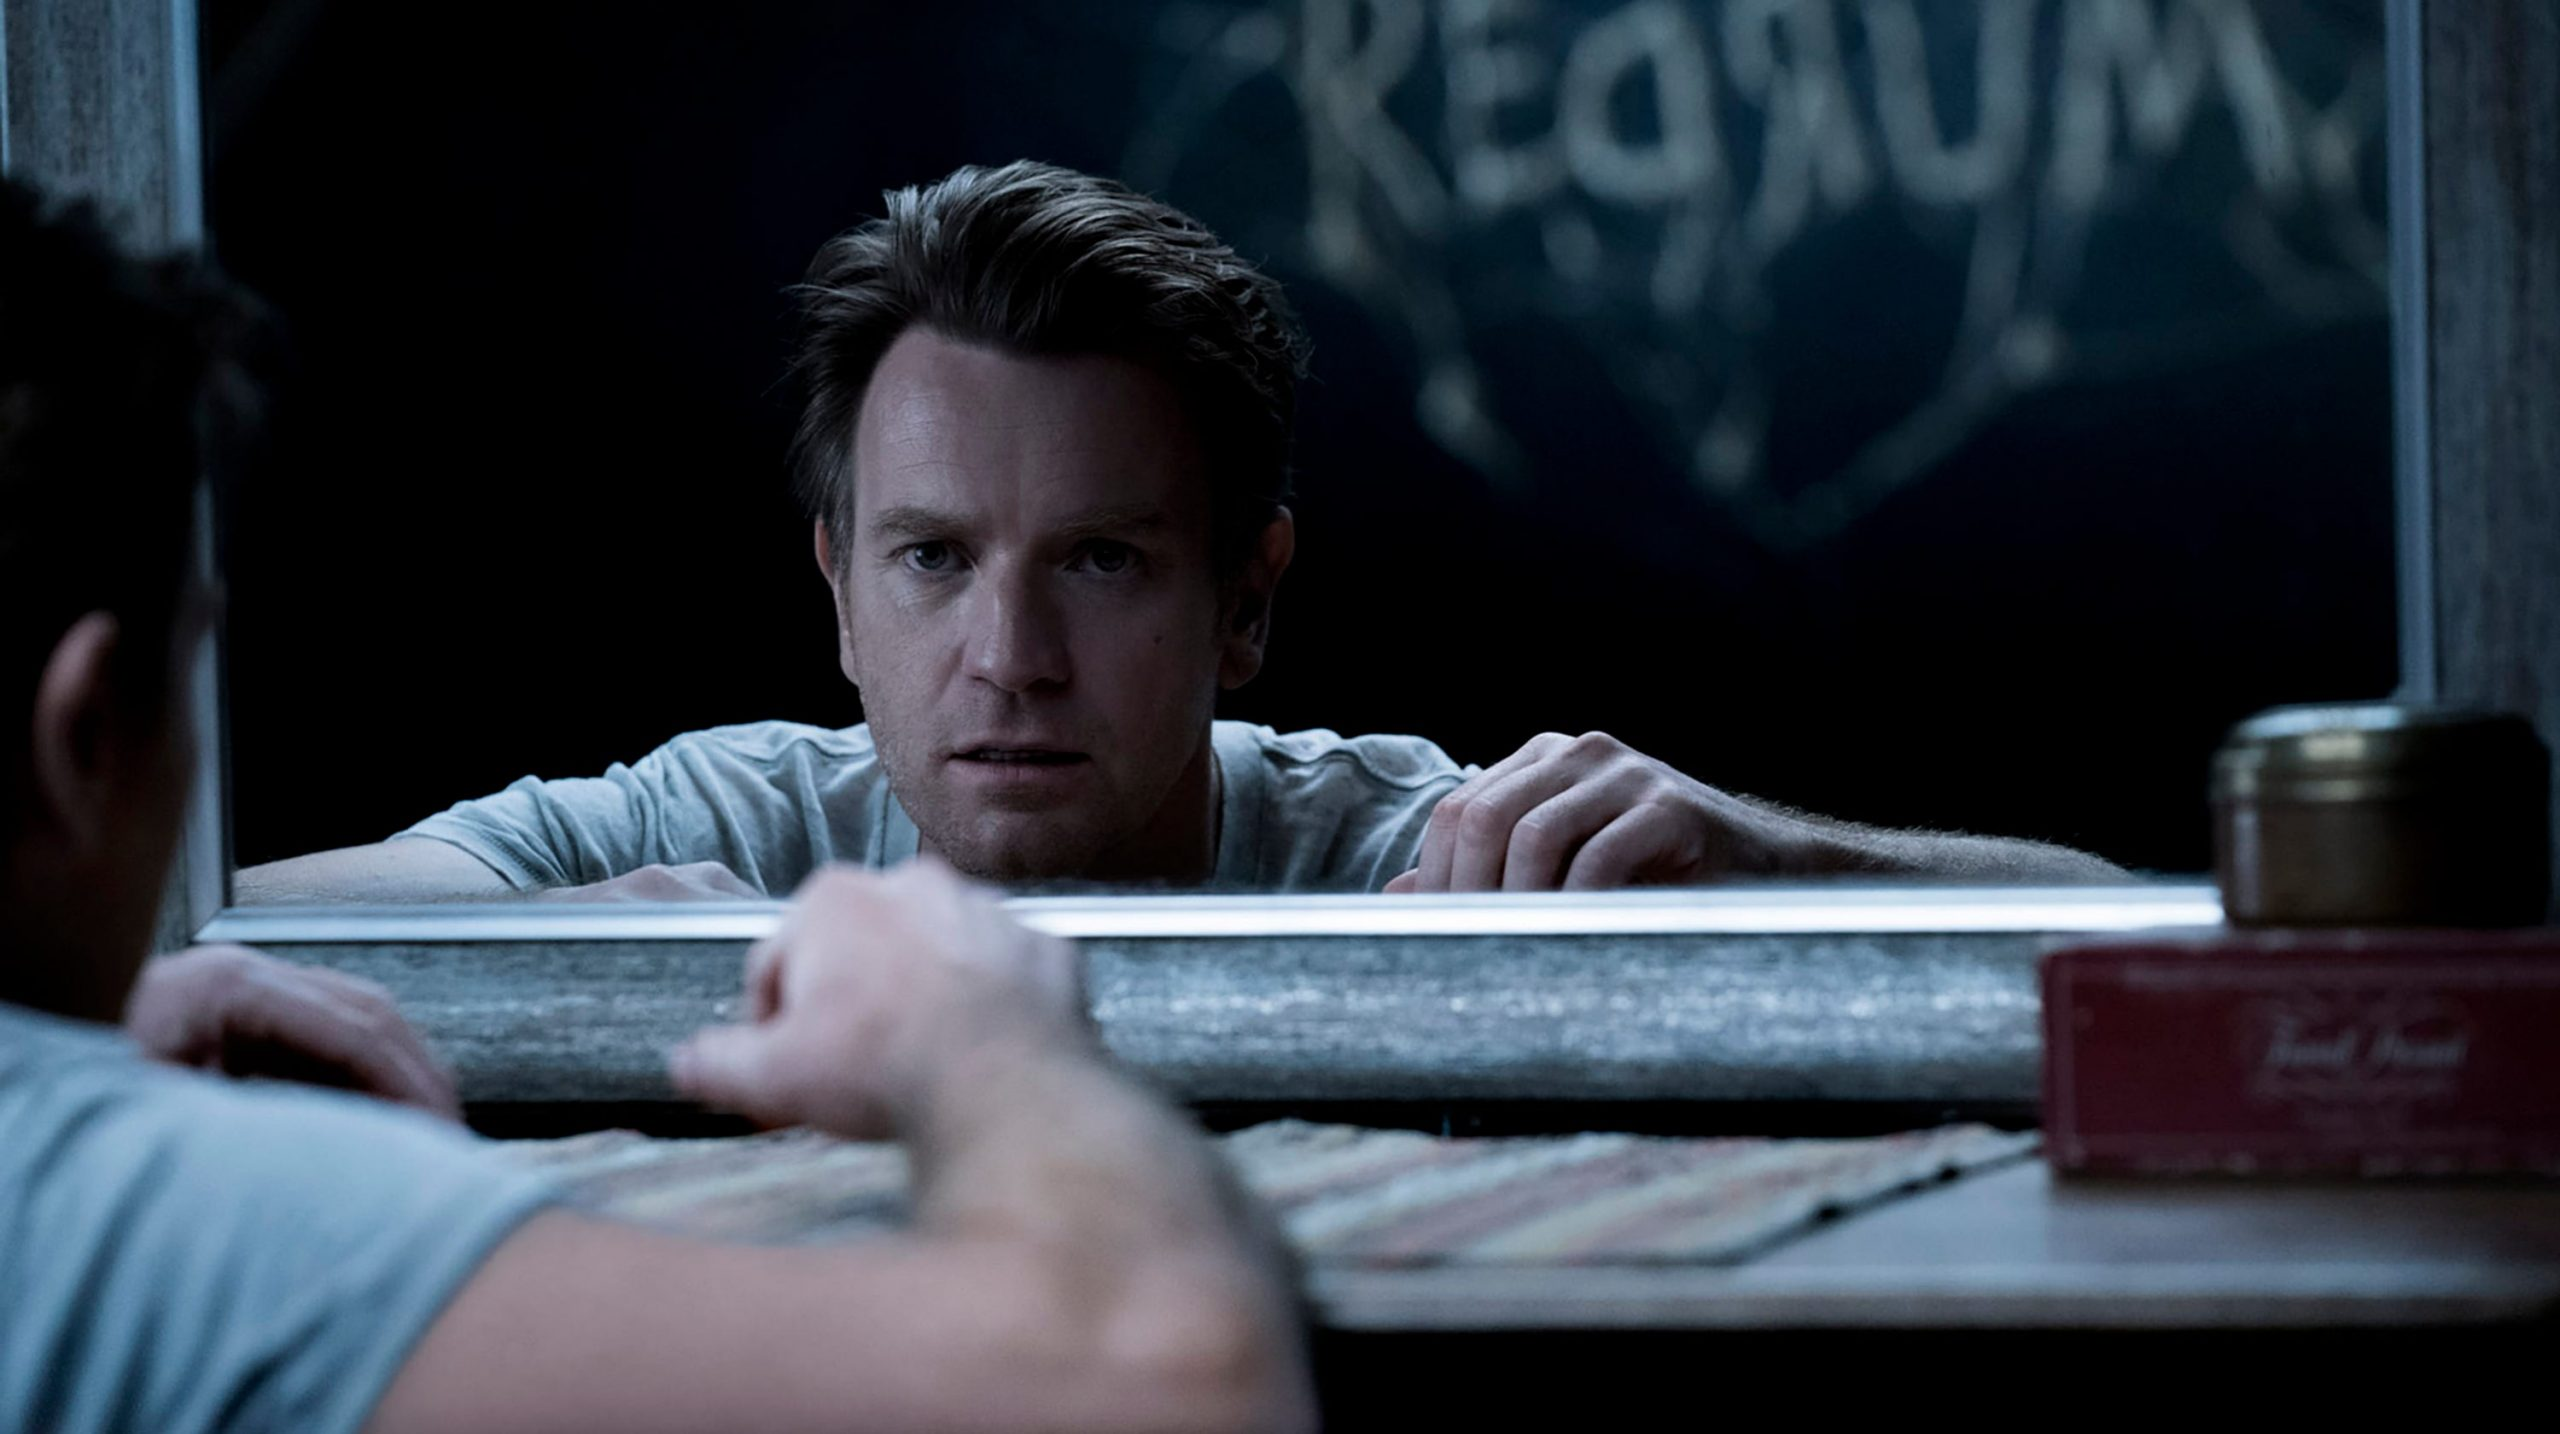 The trailer for Doctor Sleep, the sequel to Shining, has been released